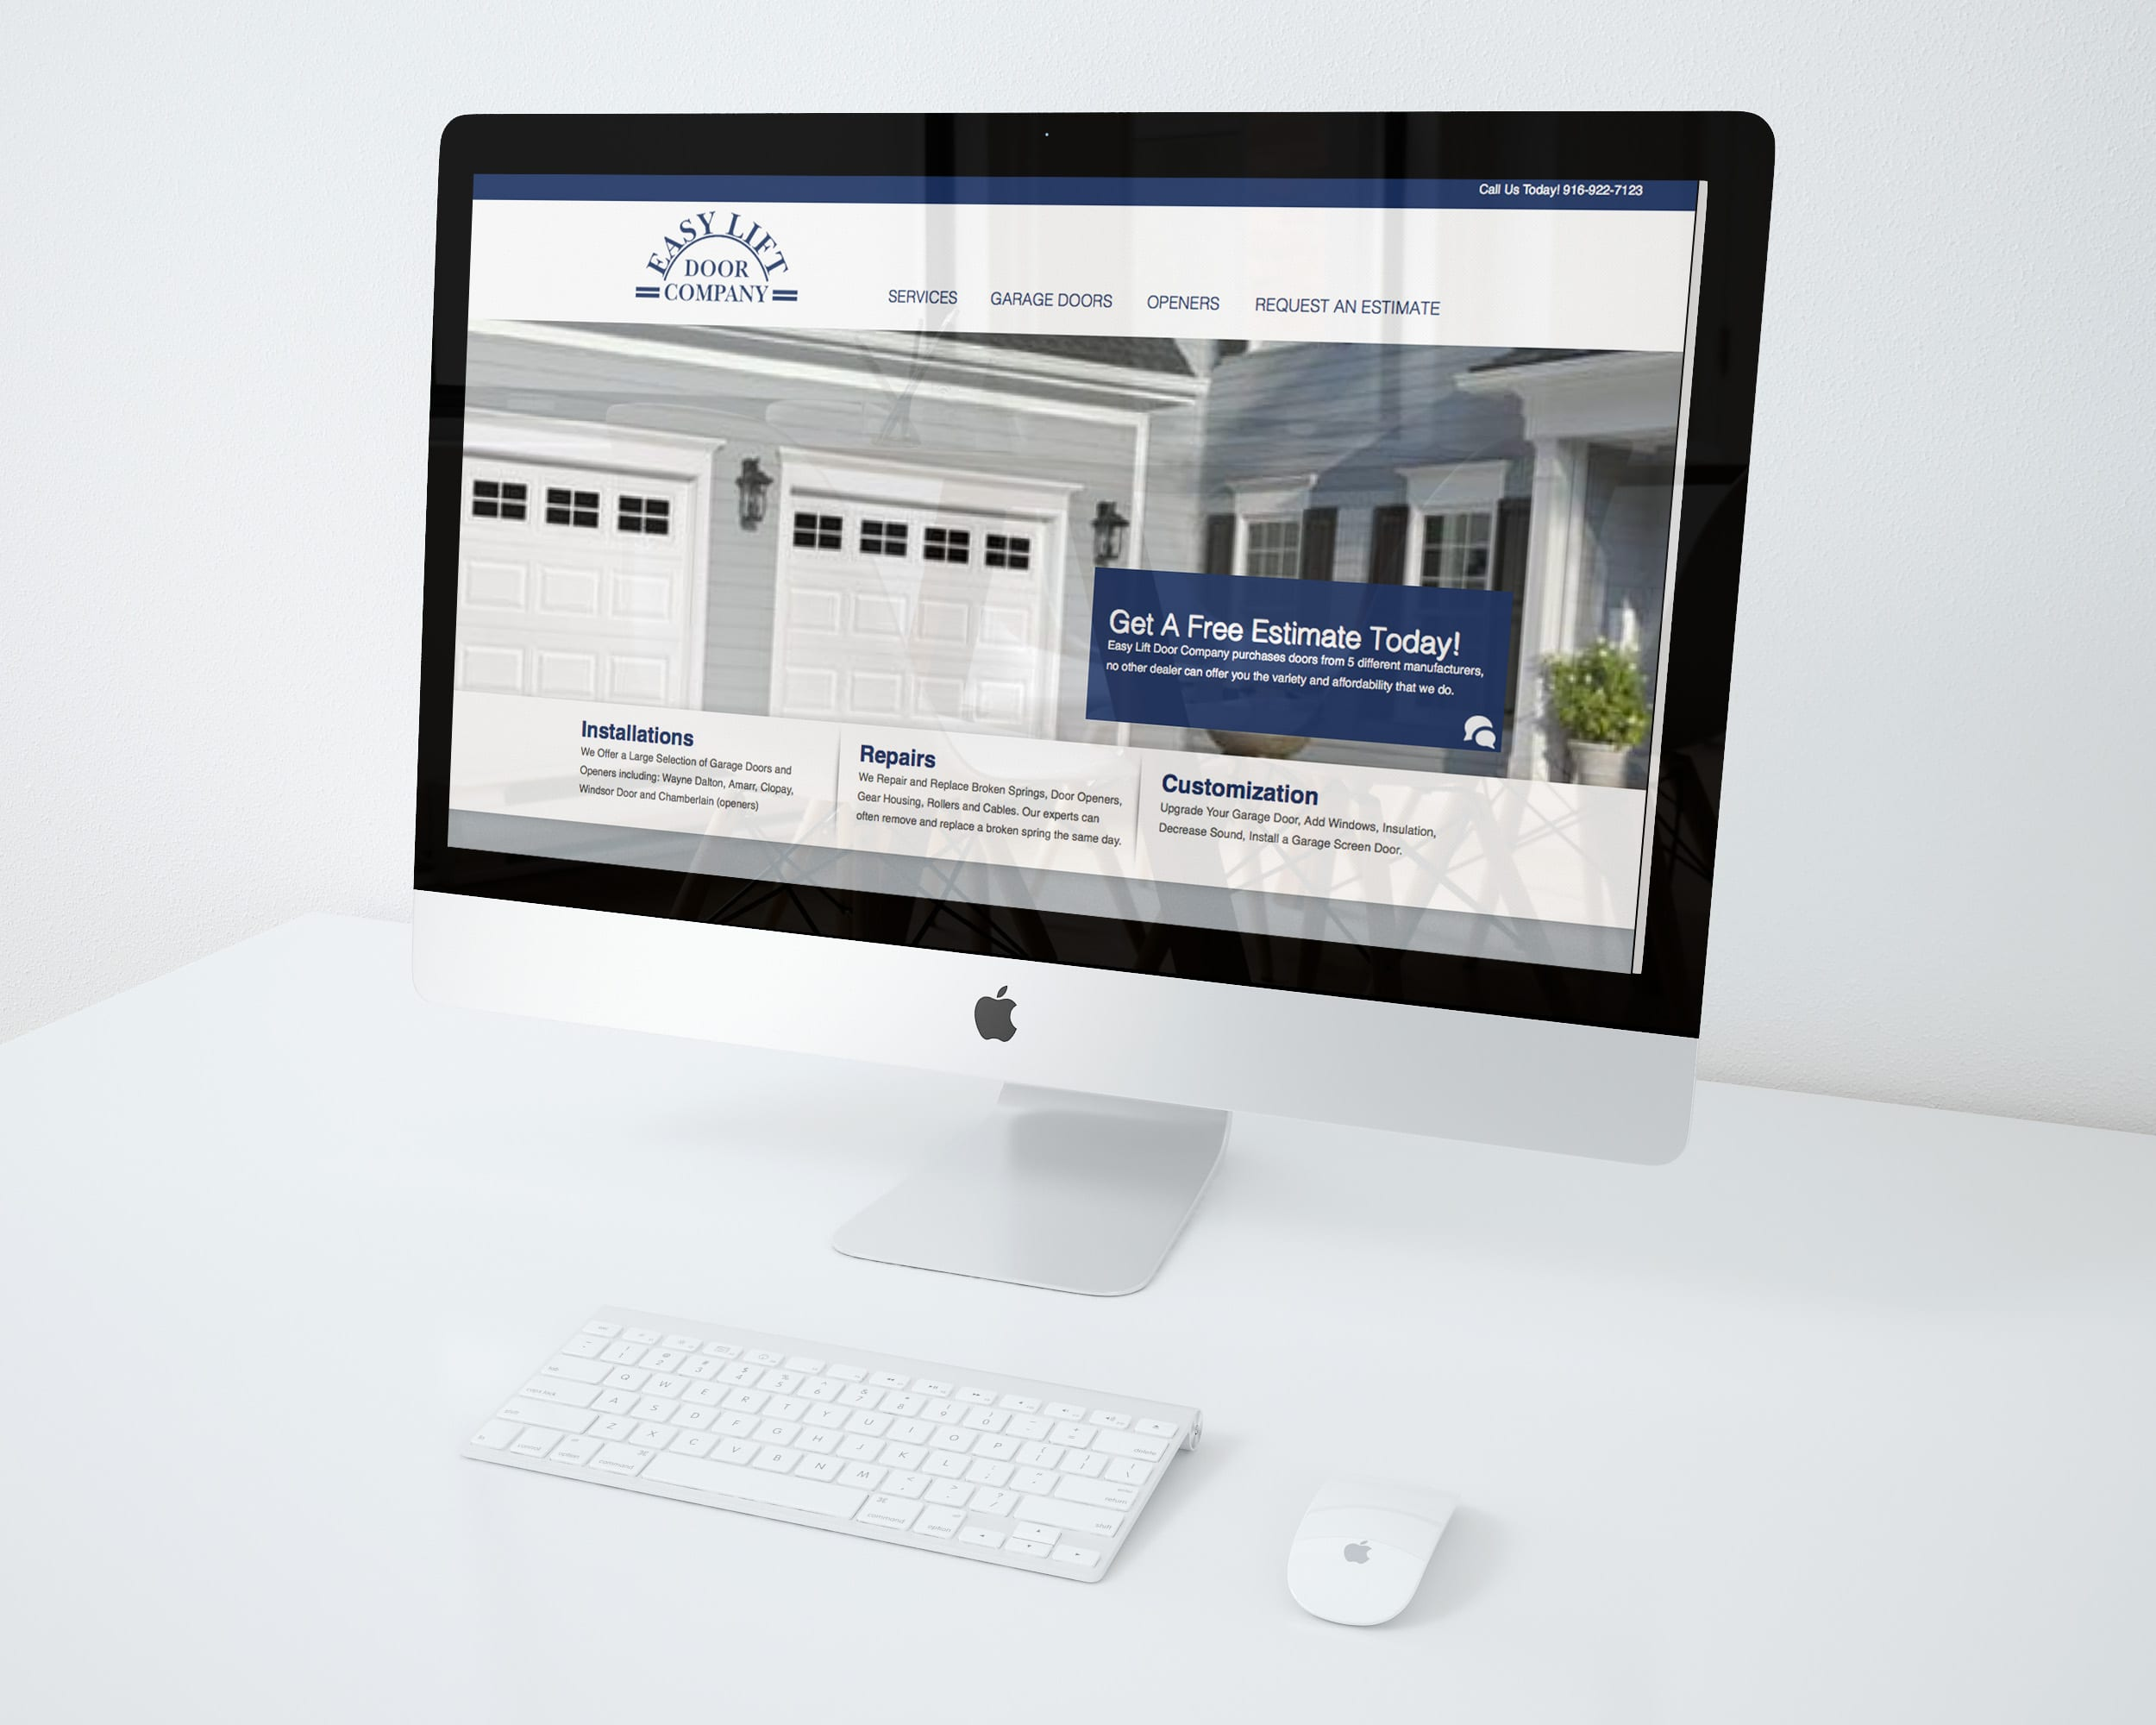 & Easy Lift Door Company - Webinet Media